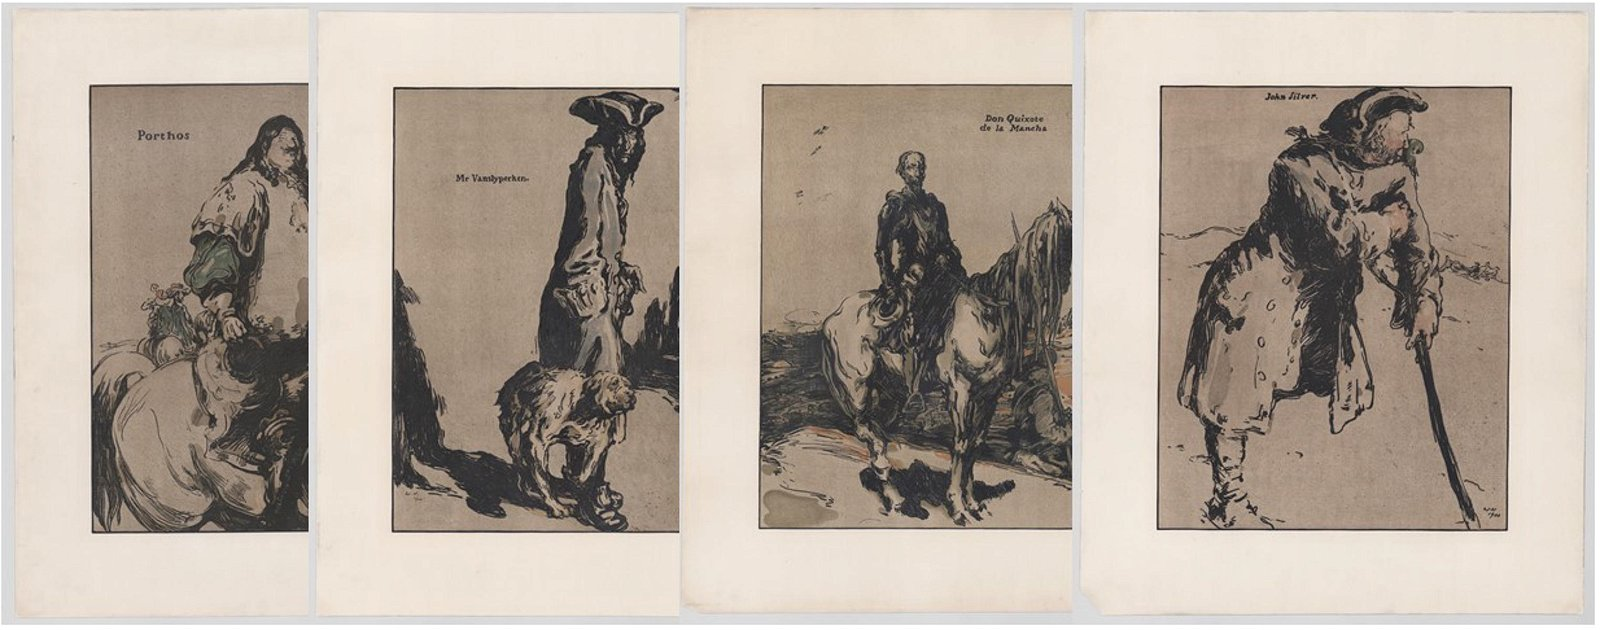 William Nicholson Lithographs [Fiction Characters]